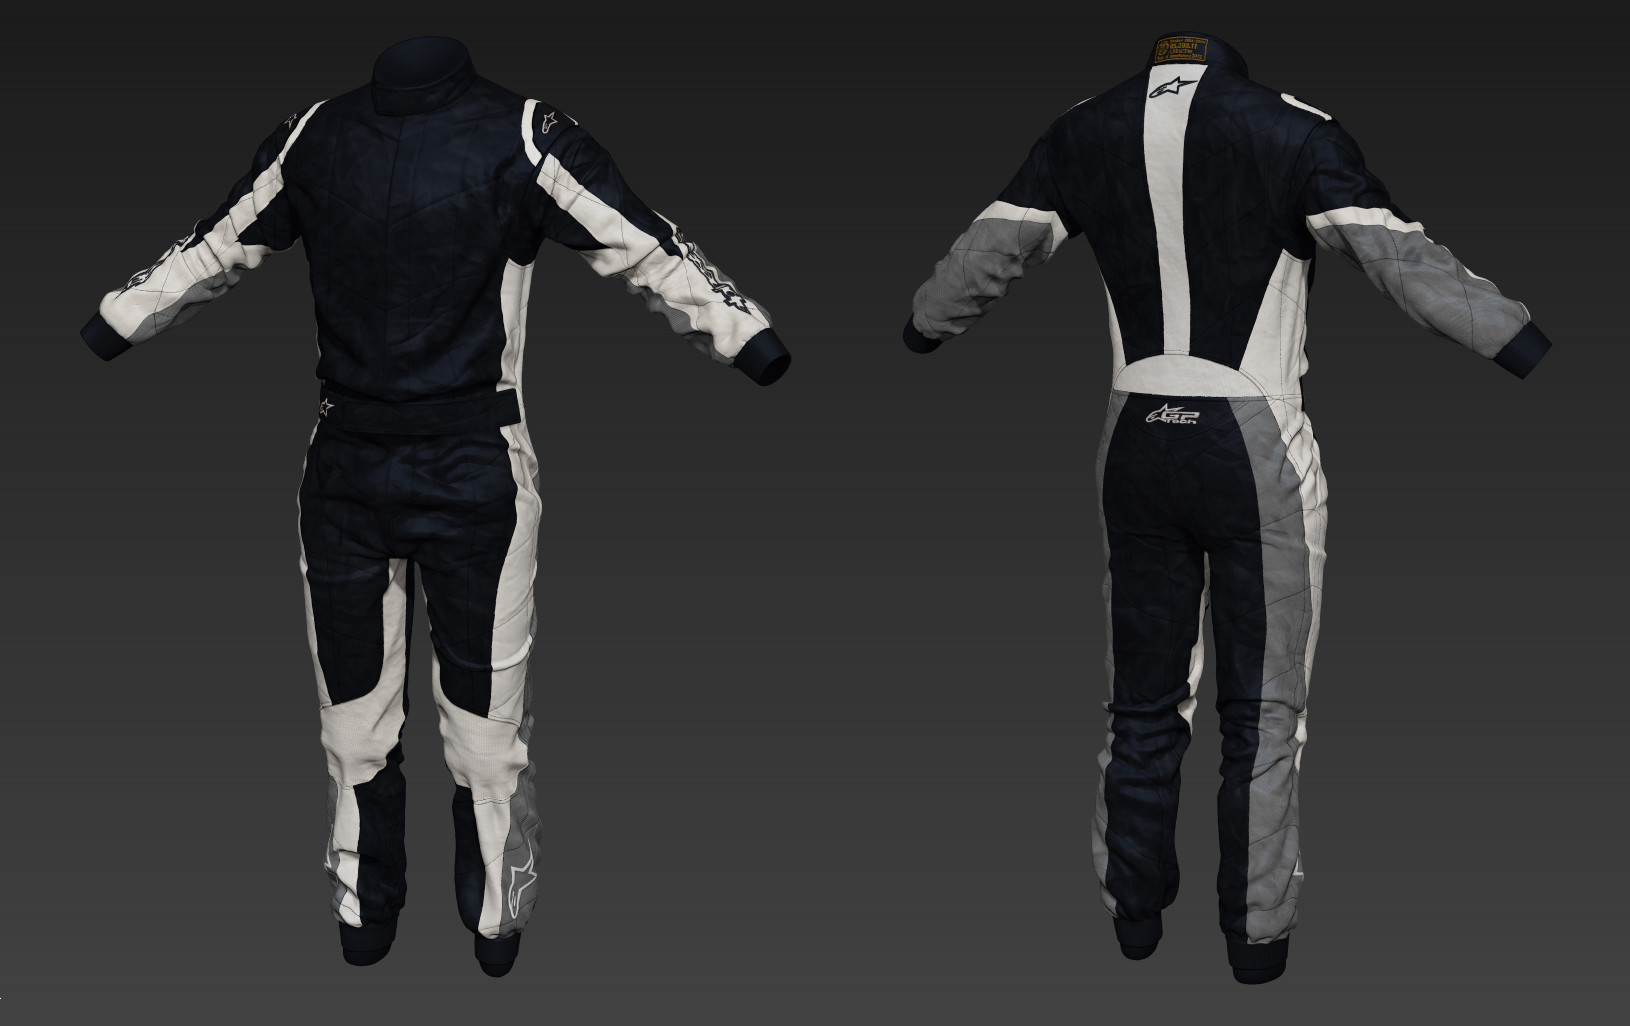 Toby hynes as suit sculpt textured 01